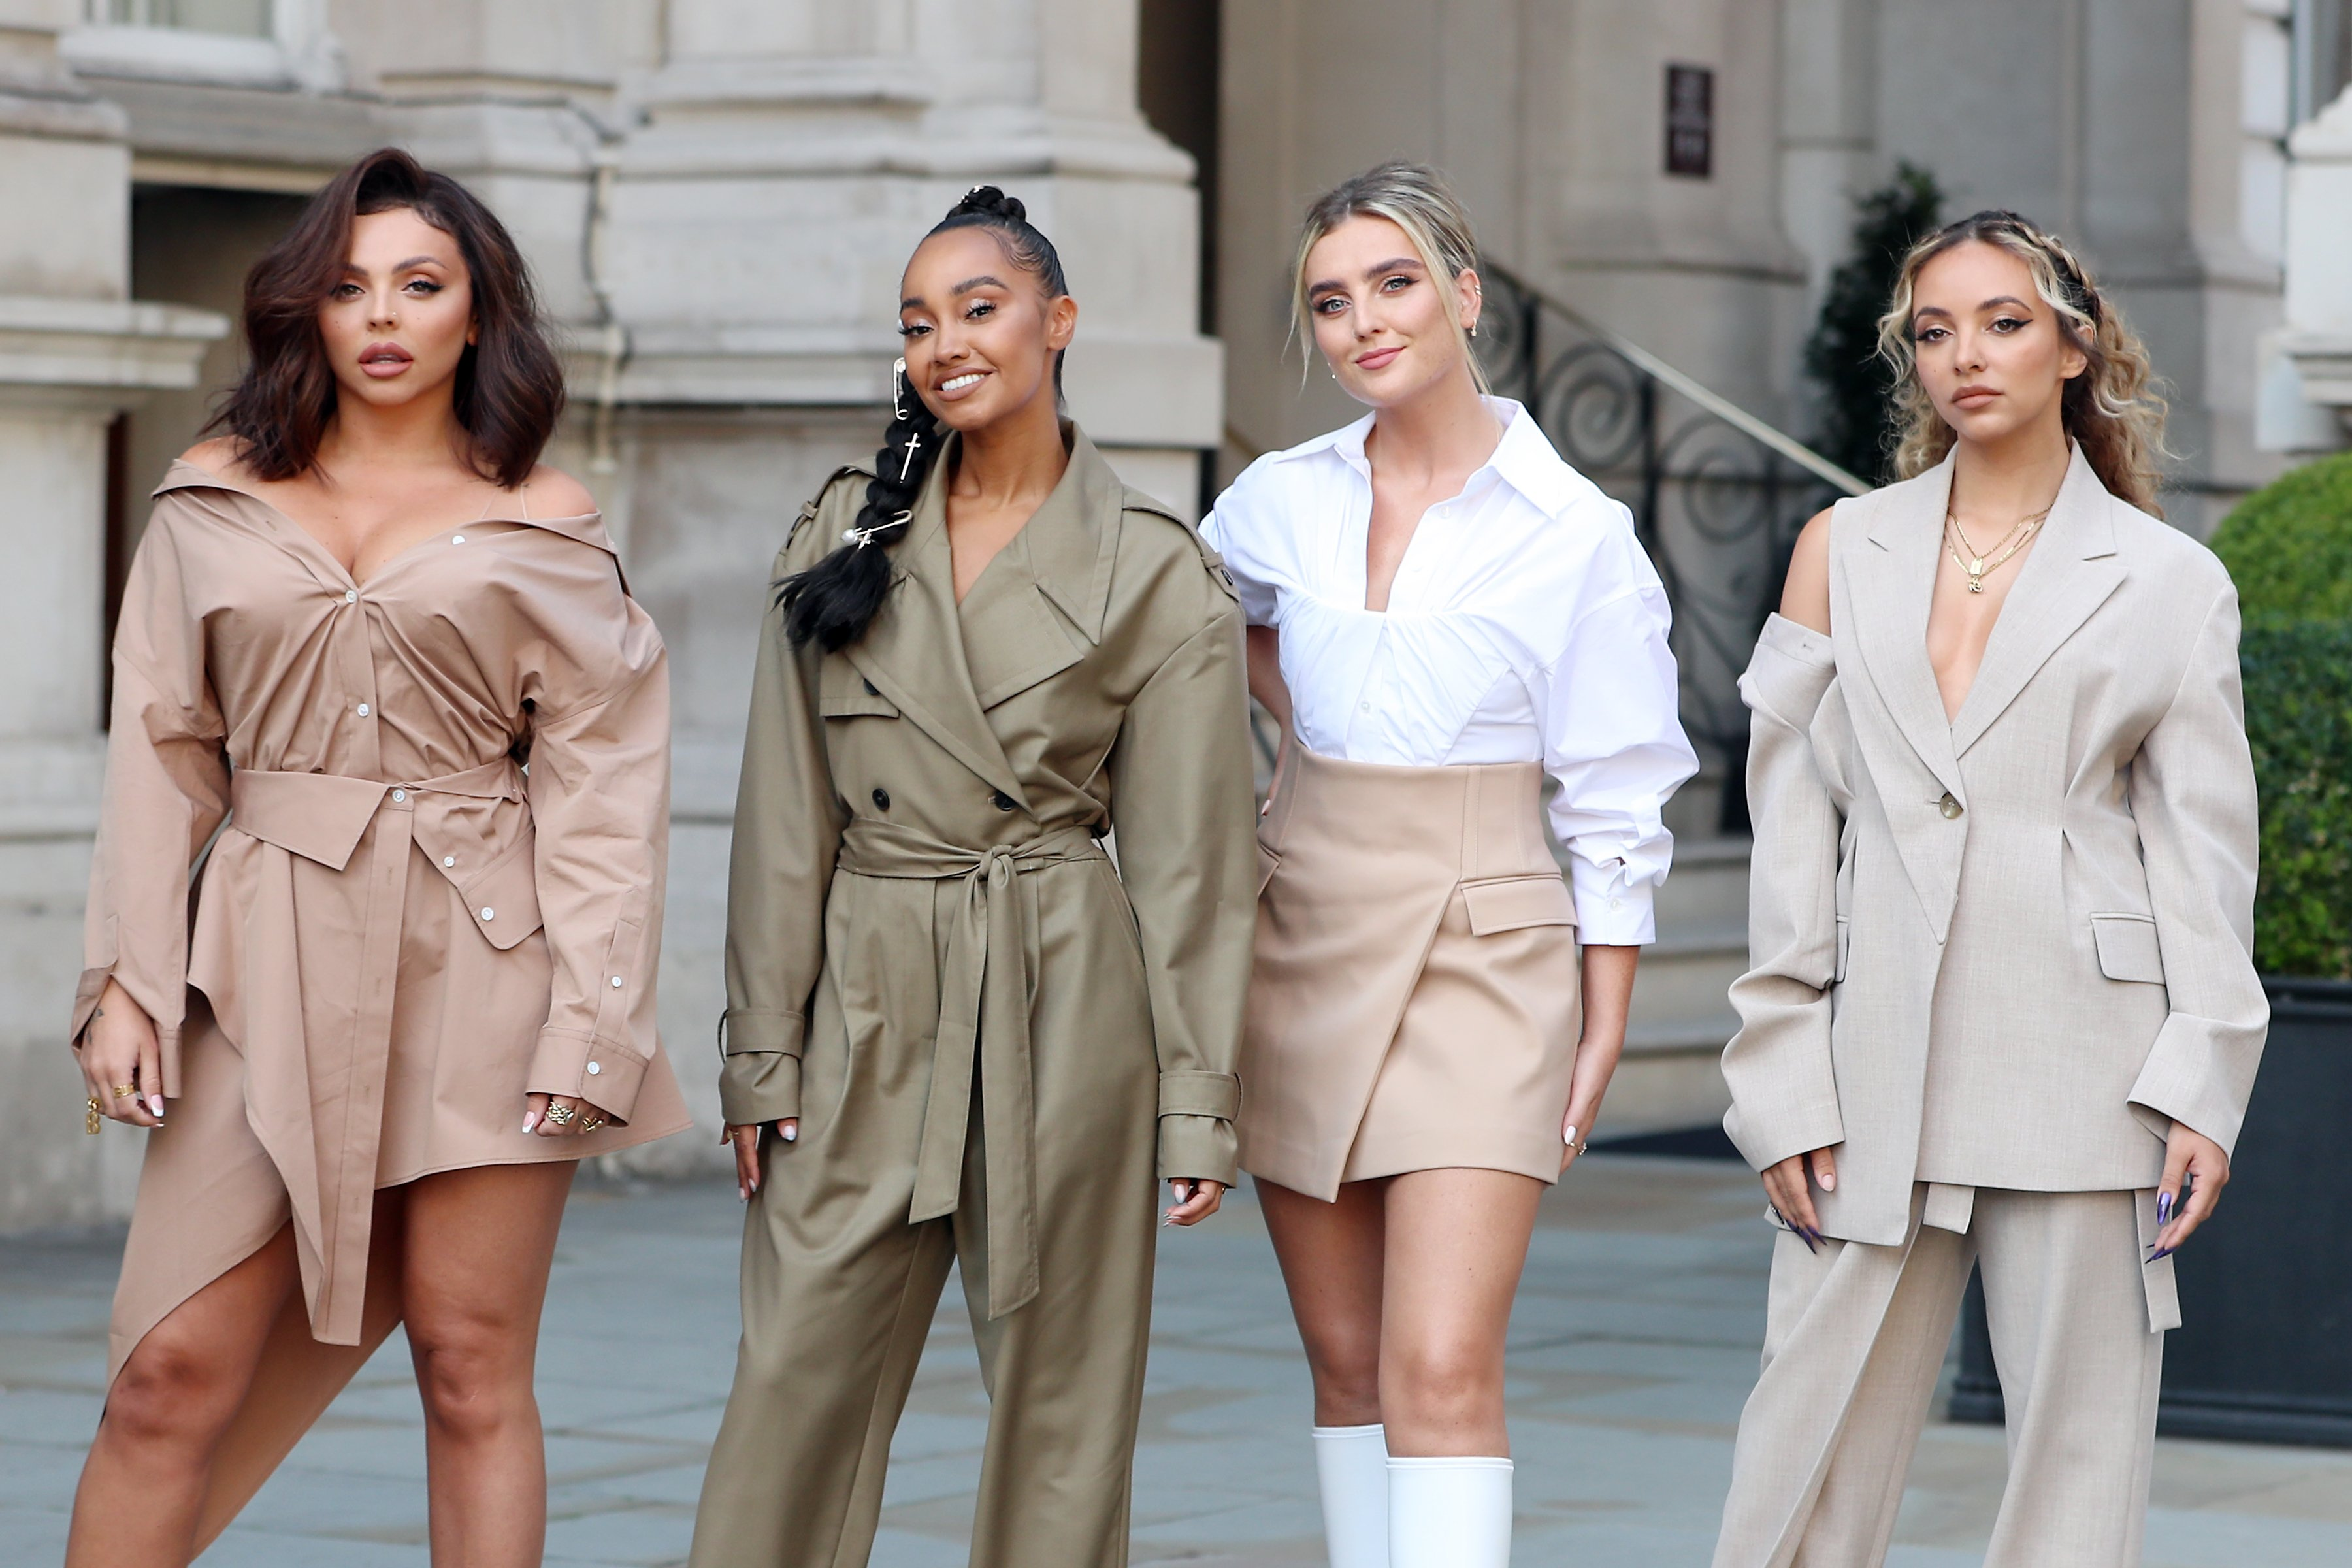 Little Mix band members leaving the Langham Hotel for their performance at BBC Radio One Live Lounge, London, 2020 | Photo: Getty Images